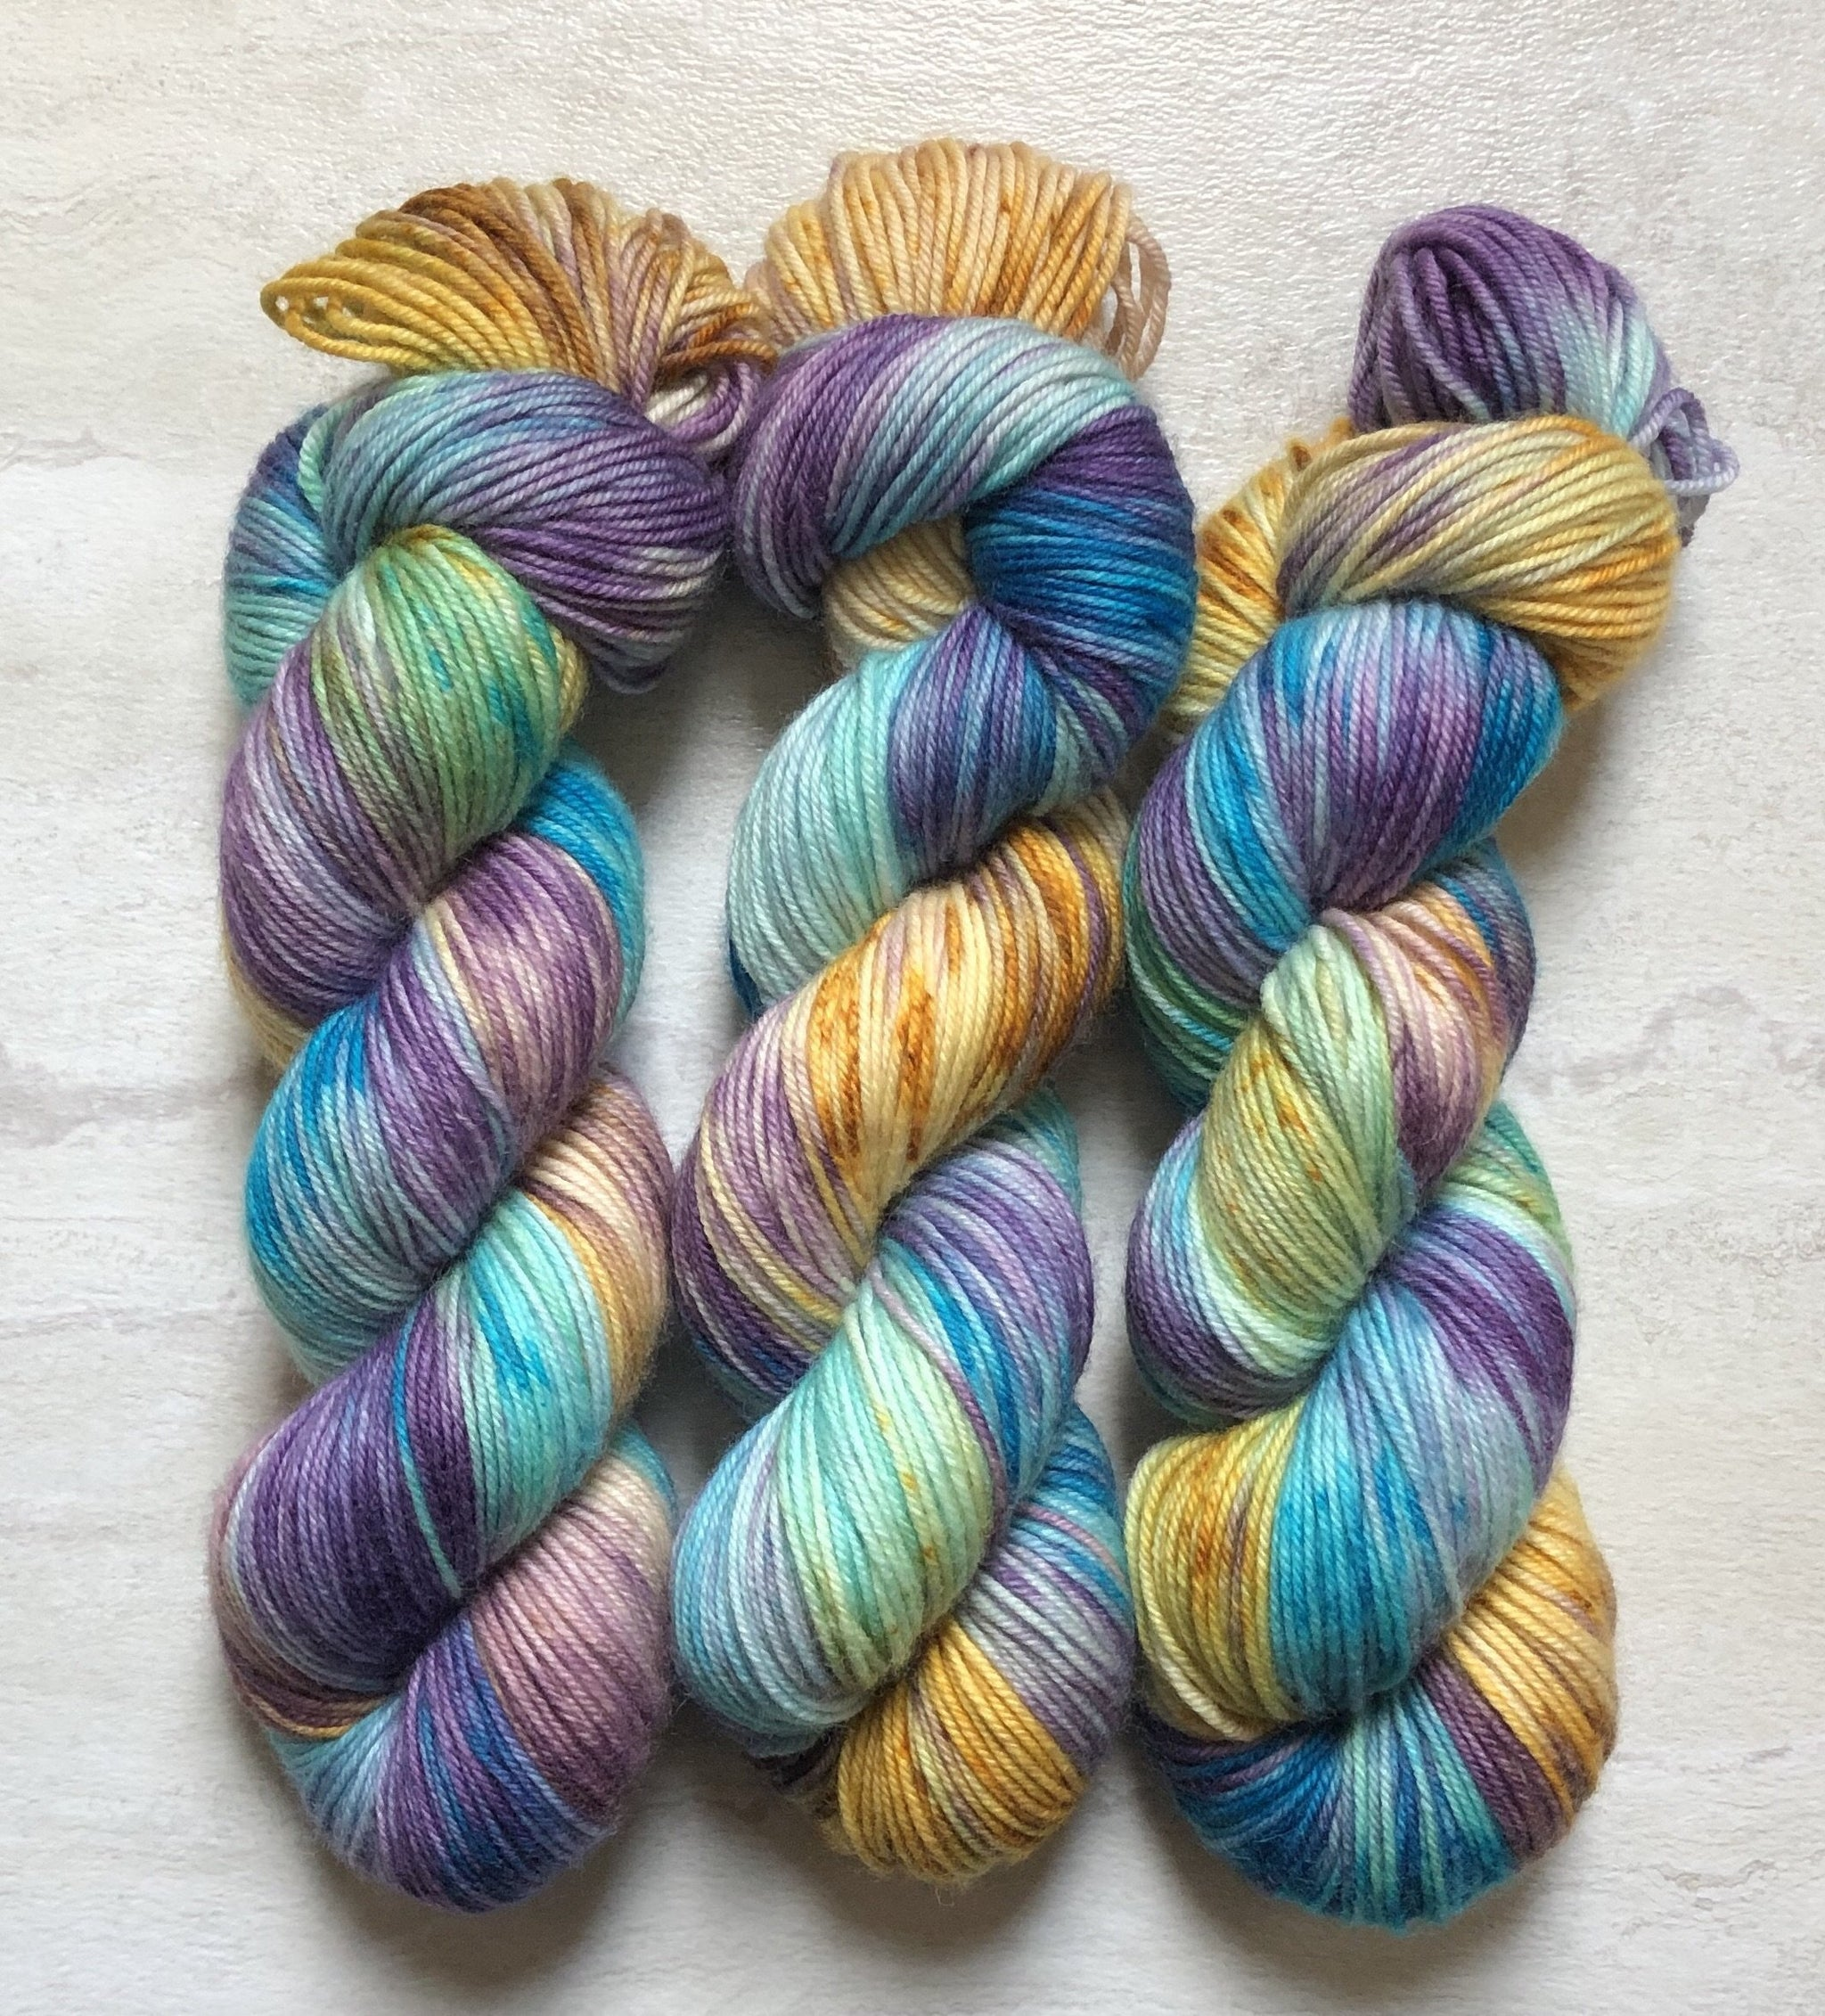 A Strange Day - Squish Like Grape DK Yarn Dye is Cast Yarns